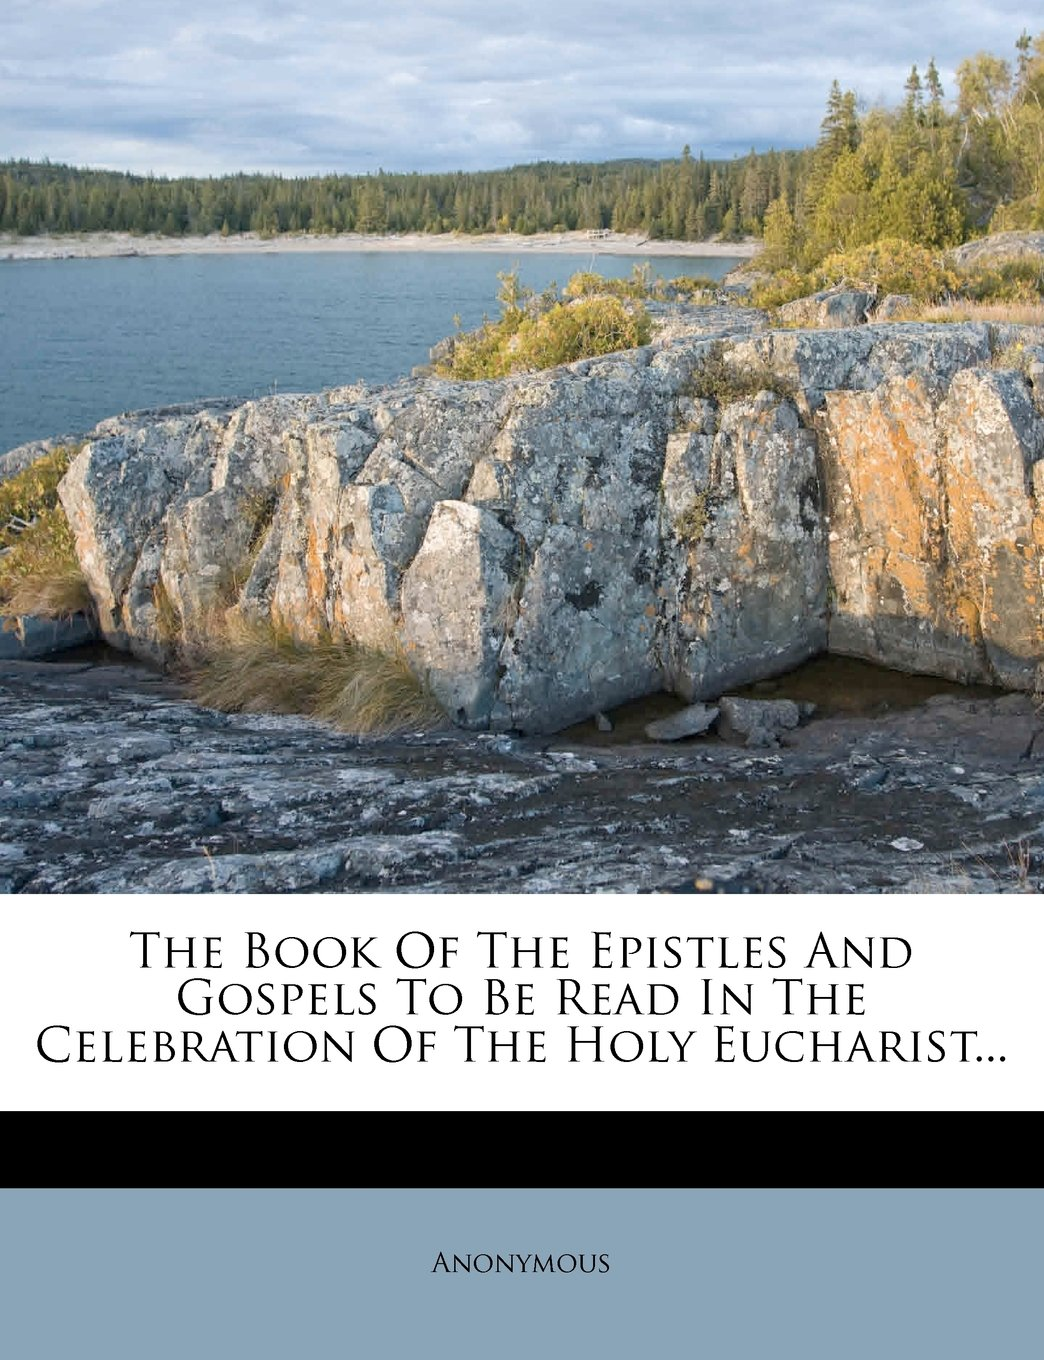 The Book Of The Epistles And Gospels To Be Read In The Celebration Of The Holy Eucharist... pdf epub